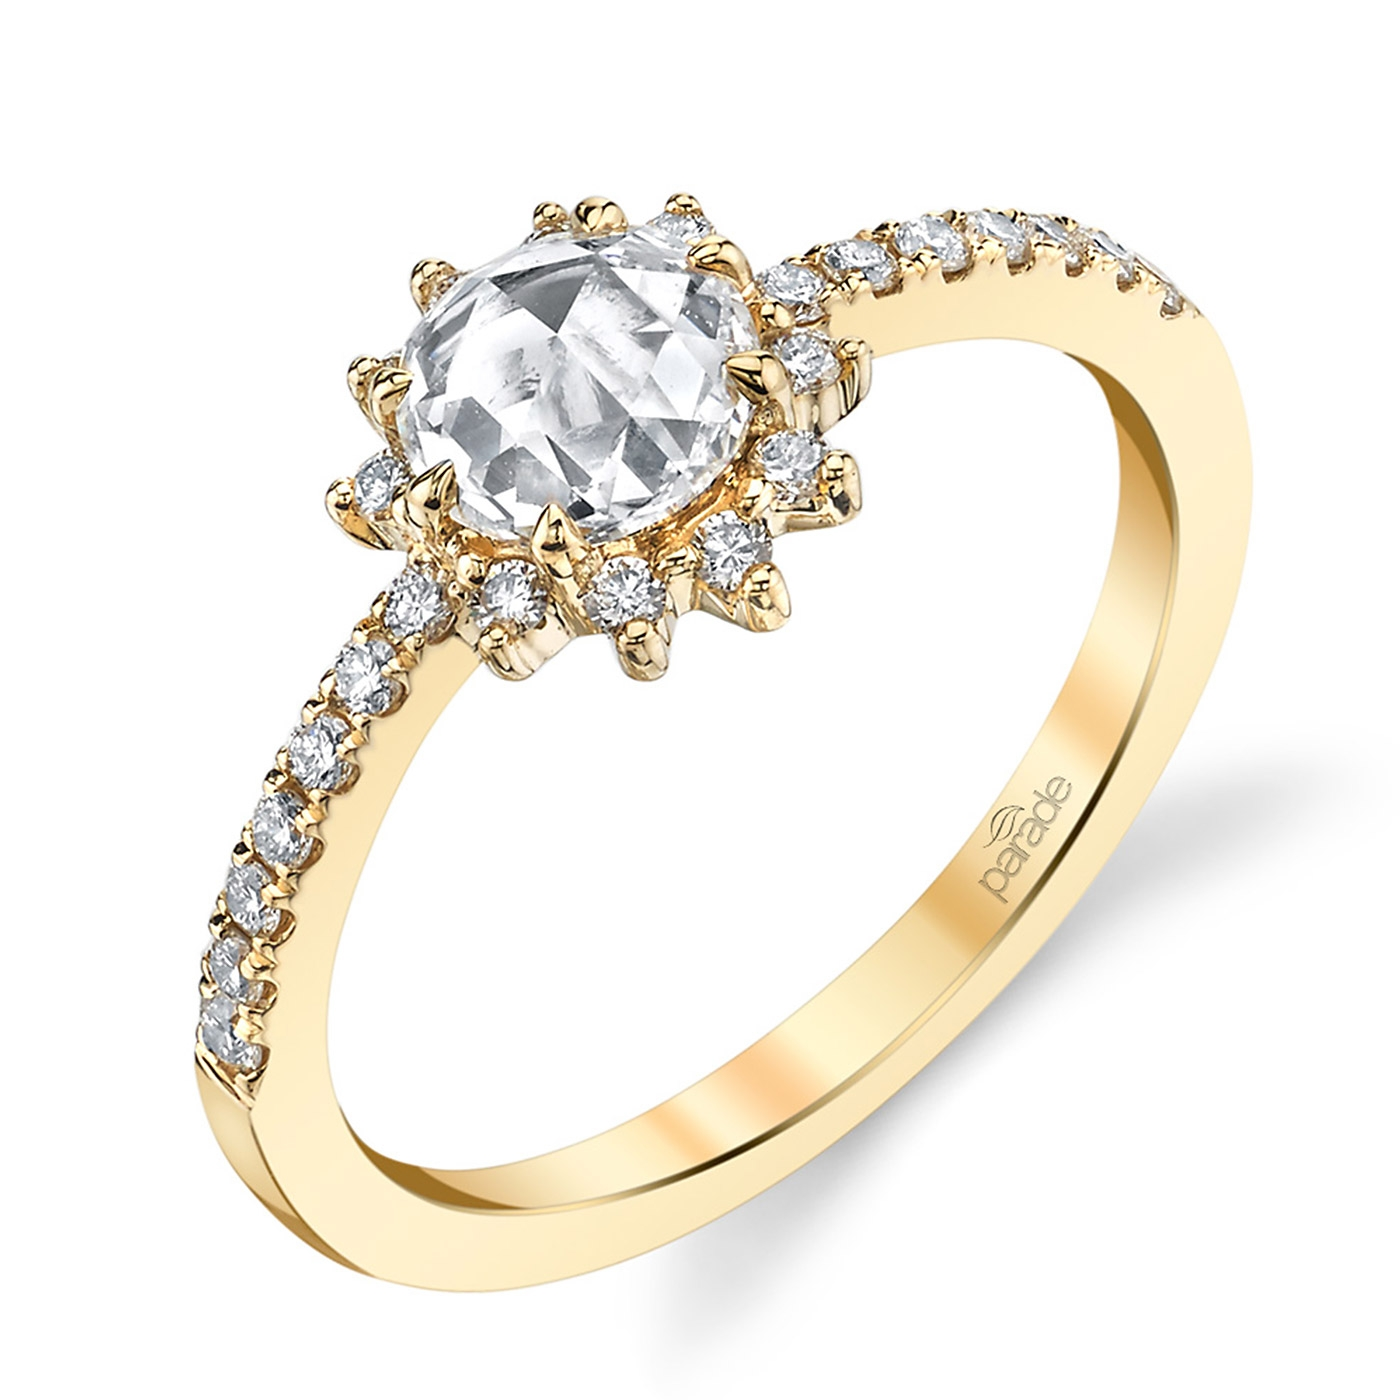 Parade Lumiere Bridal 18 Karat Diamond Engagement Ring LMBR3989 R